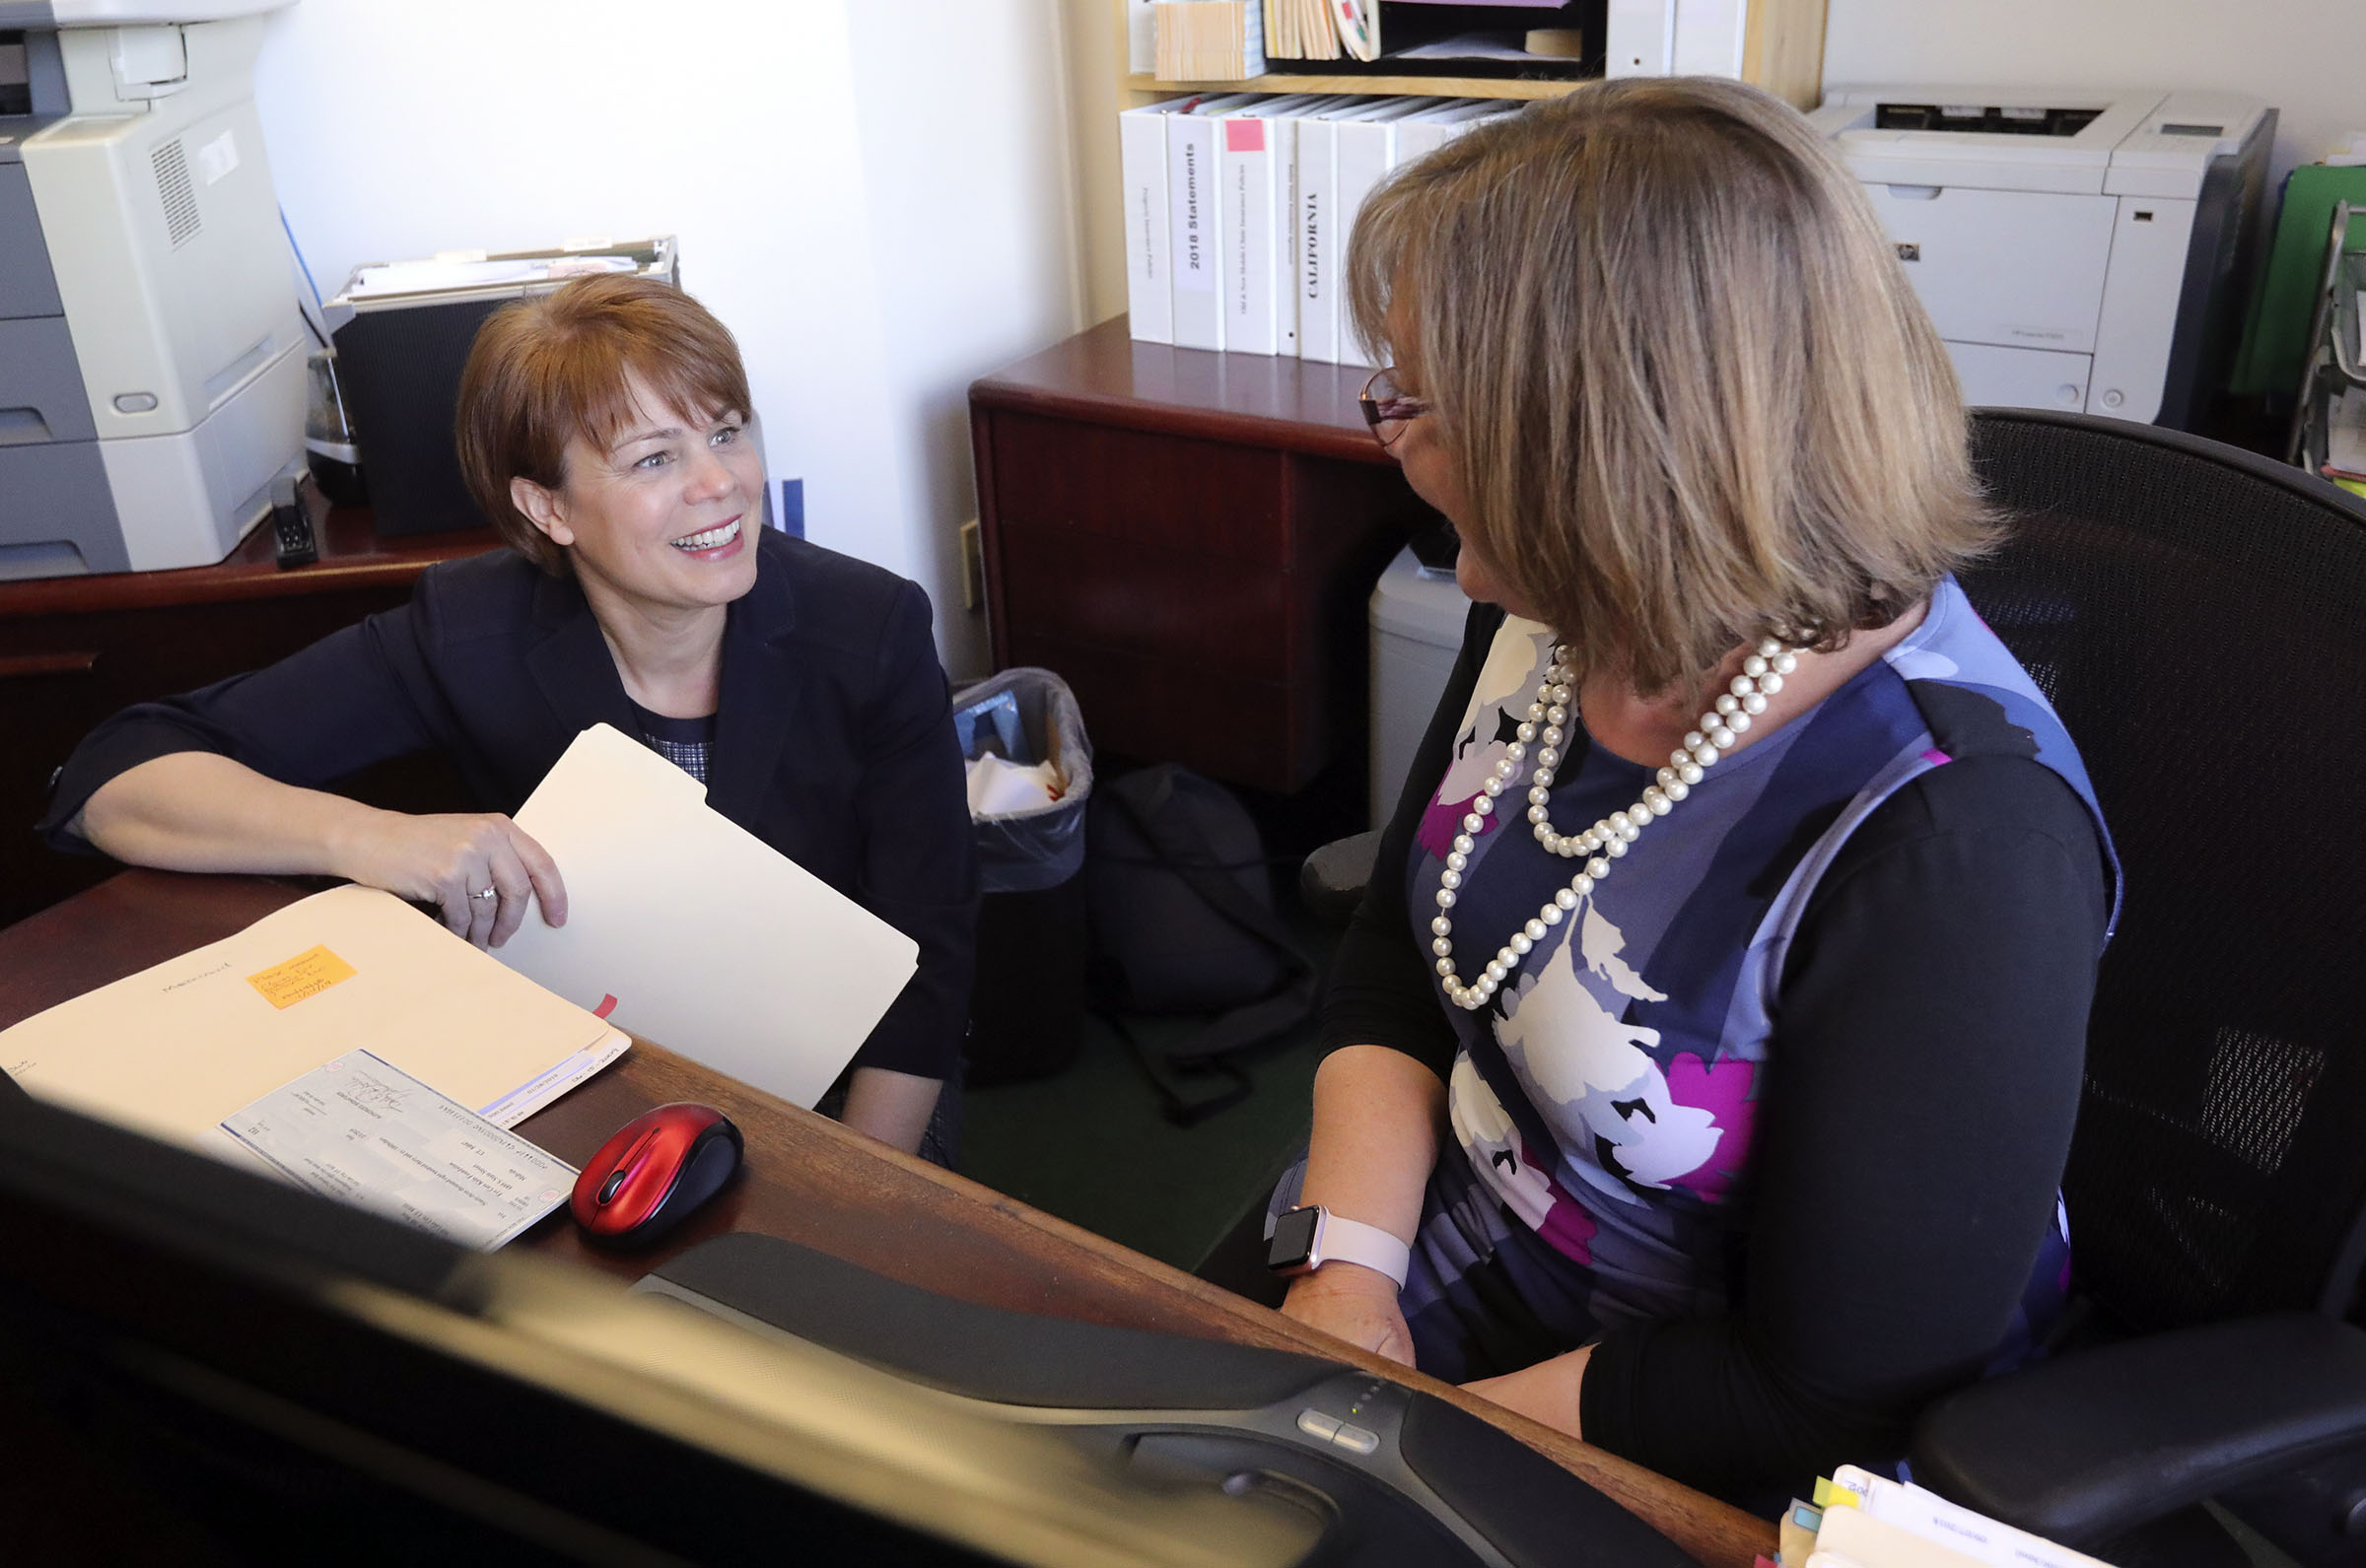 Sister Sharon Eubank, first counselor in the Relief Society general presidency of The Church of Jesus Christ of Latter-day Saints, chats with Eye Care 4 Kids bookkeeper Christie Allred at Eye Care 4 Kids in Midvale, Utah, on Thursday, Feb. 7, 2019. The Church of Jesus Christ of Latter-day Saints 2018 Light the World campaign raised more than $93,000 for Eye Care 4 Kids.